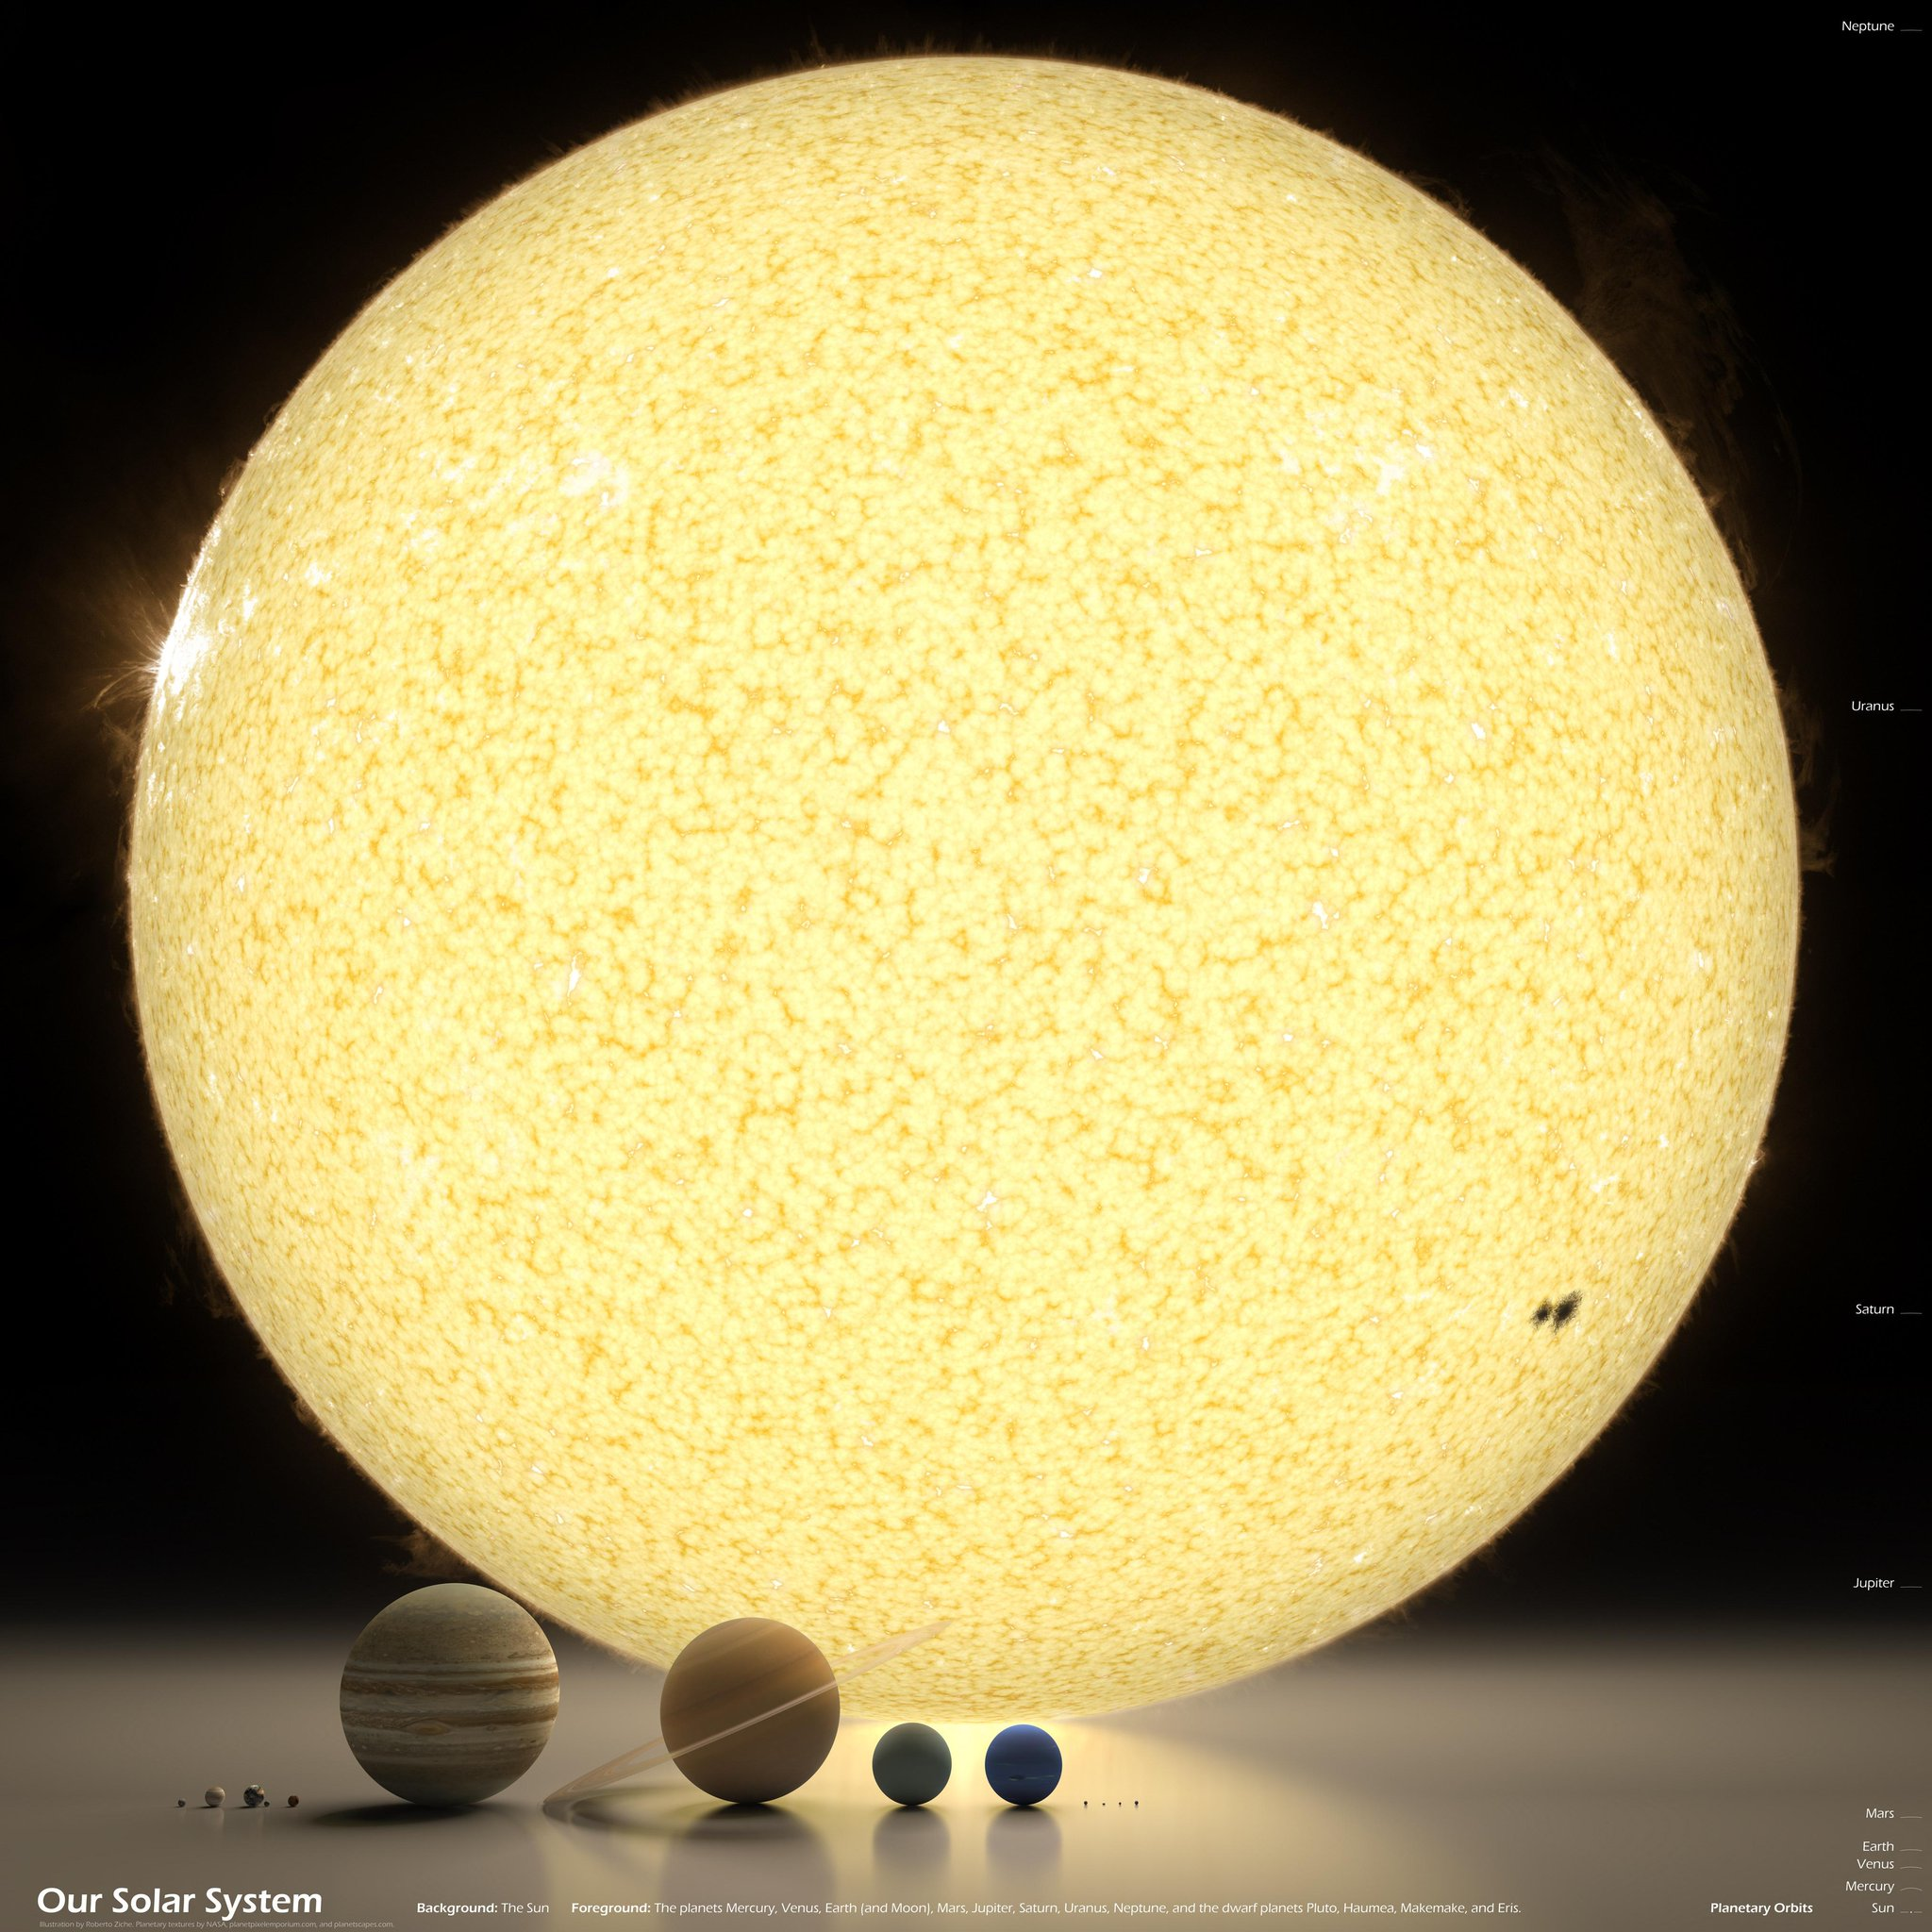 Impressive image of the Sun and planets of our system to scale. http://t.co/lAU4b1ARPF